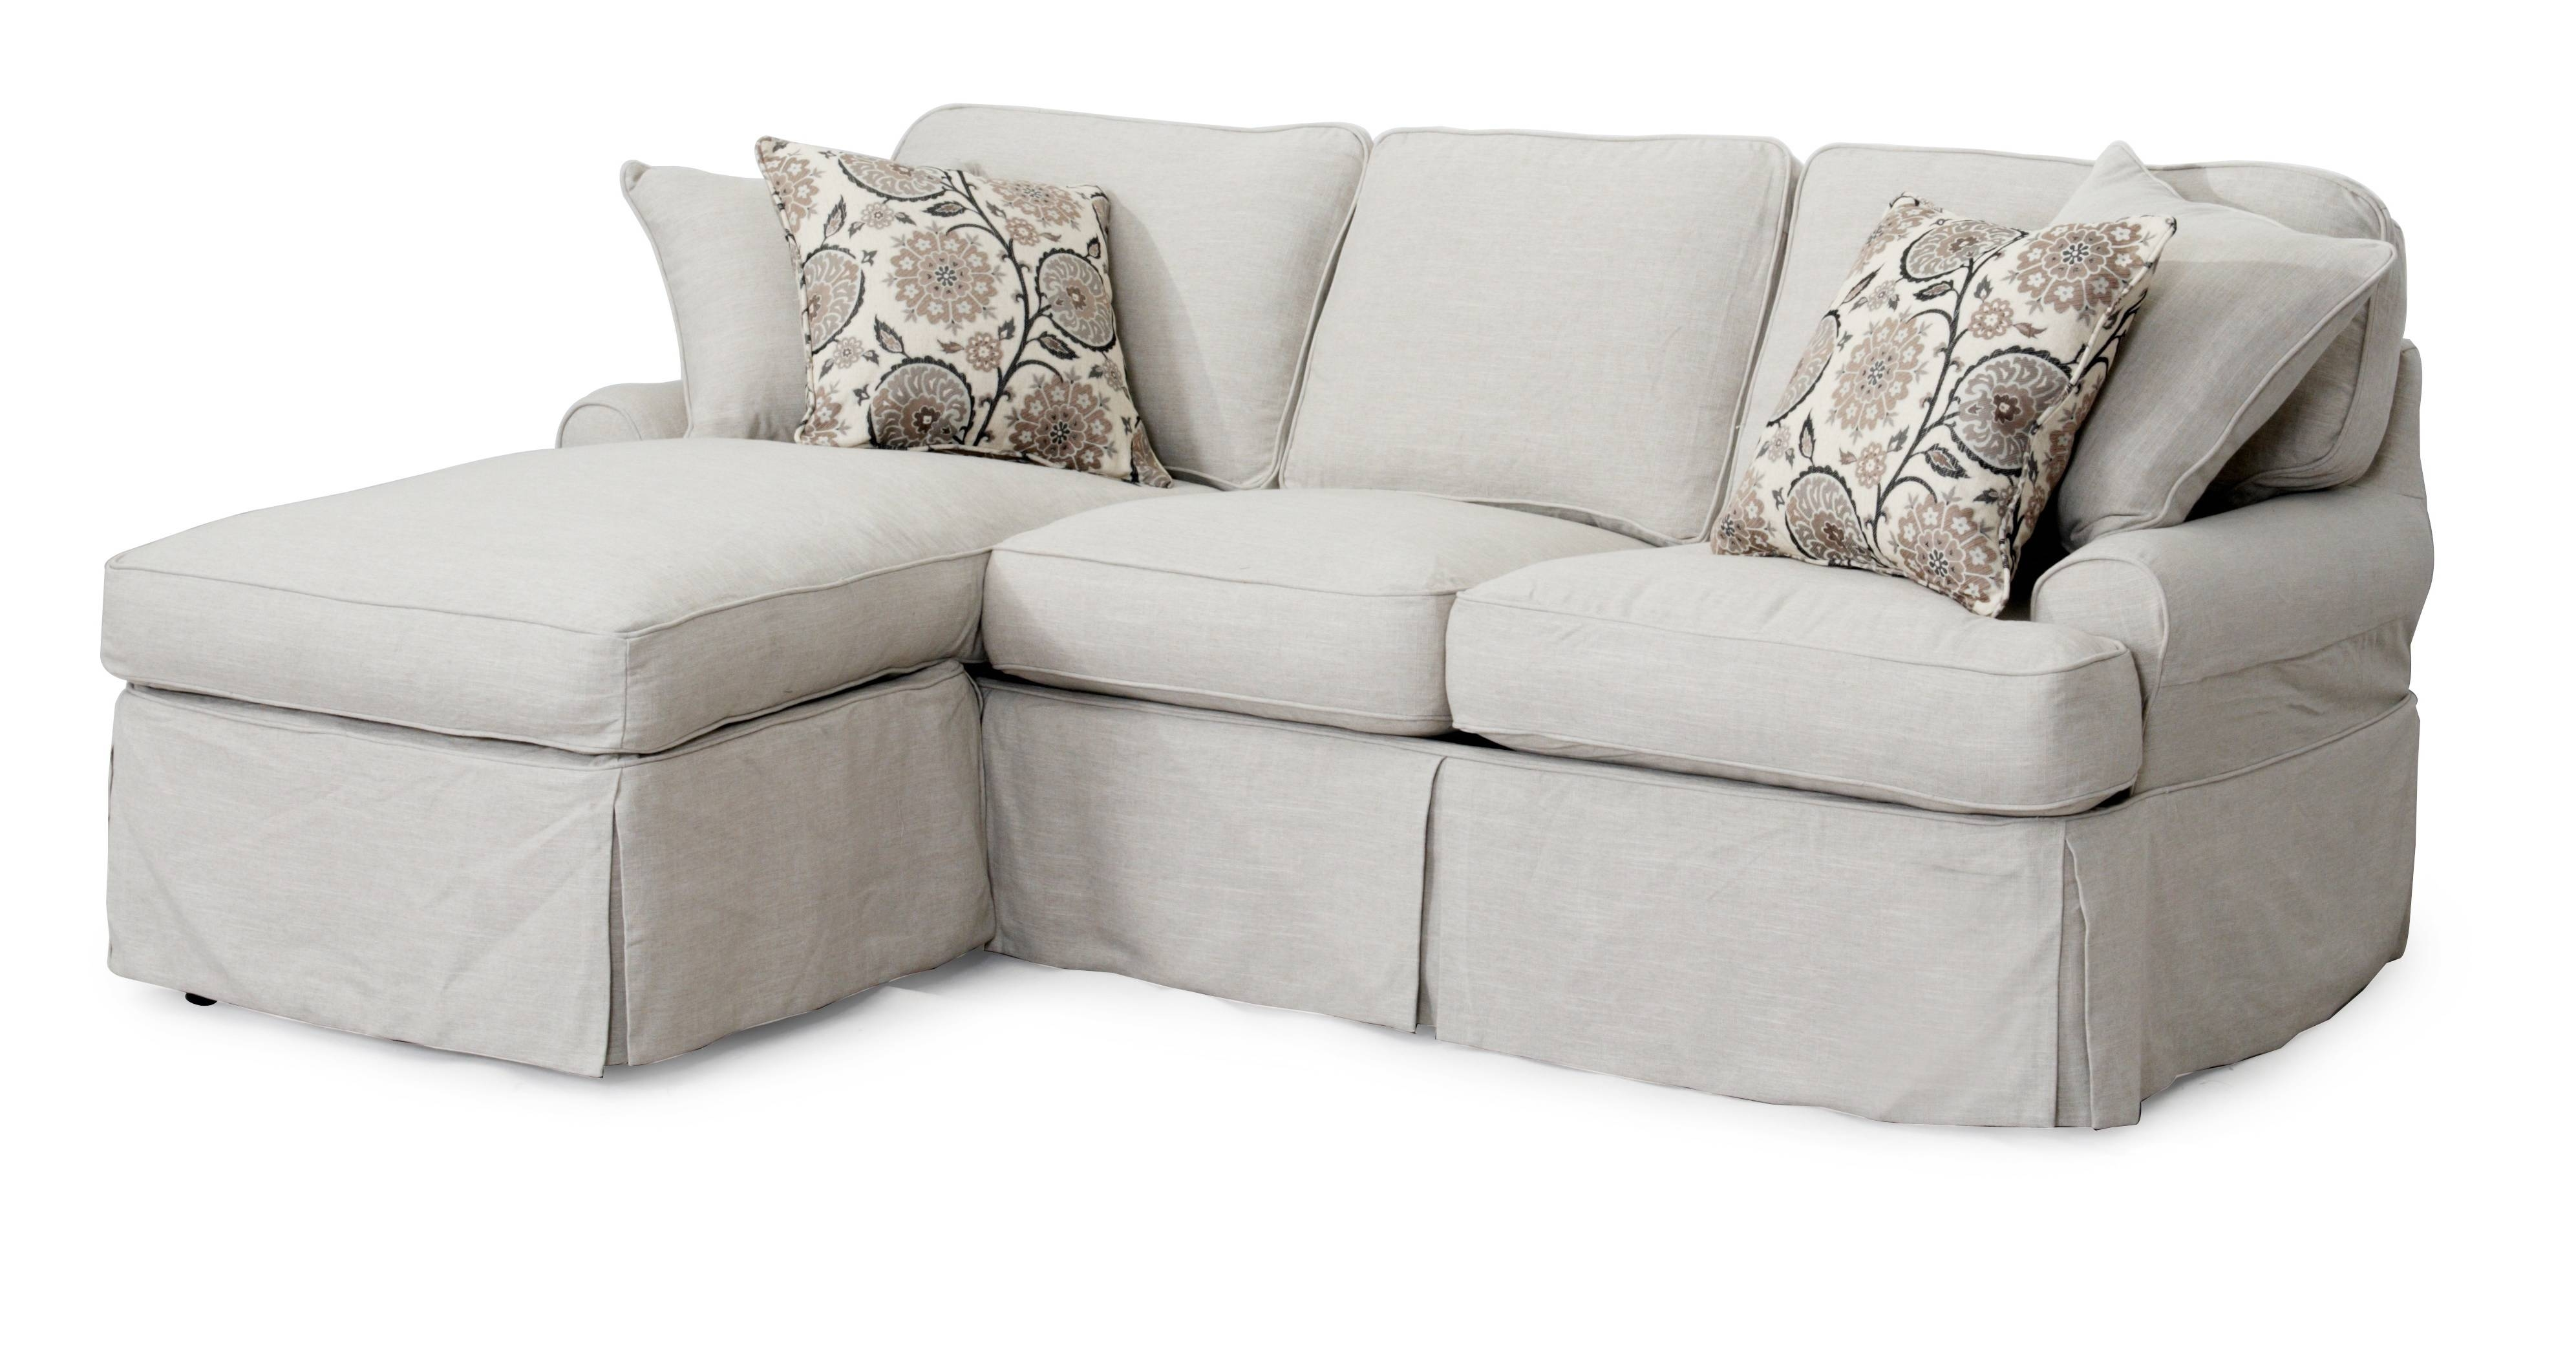 Decor: Breathtaking Target Slipcovers For Chic Home Furniture throughout Chaise Sofa Covers (Image 2 of 30)